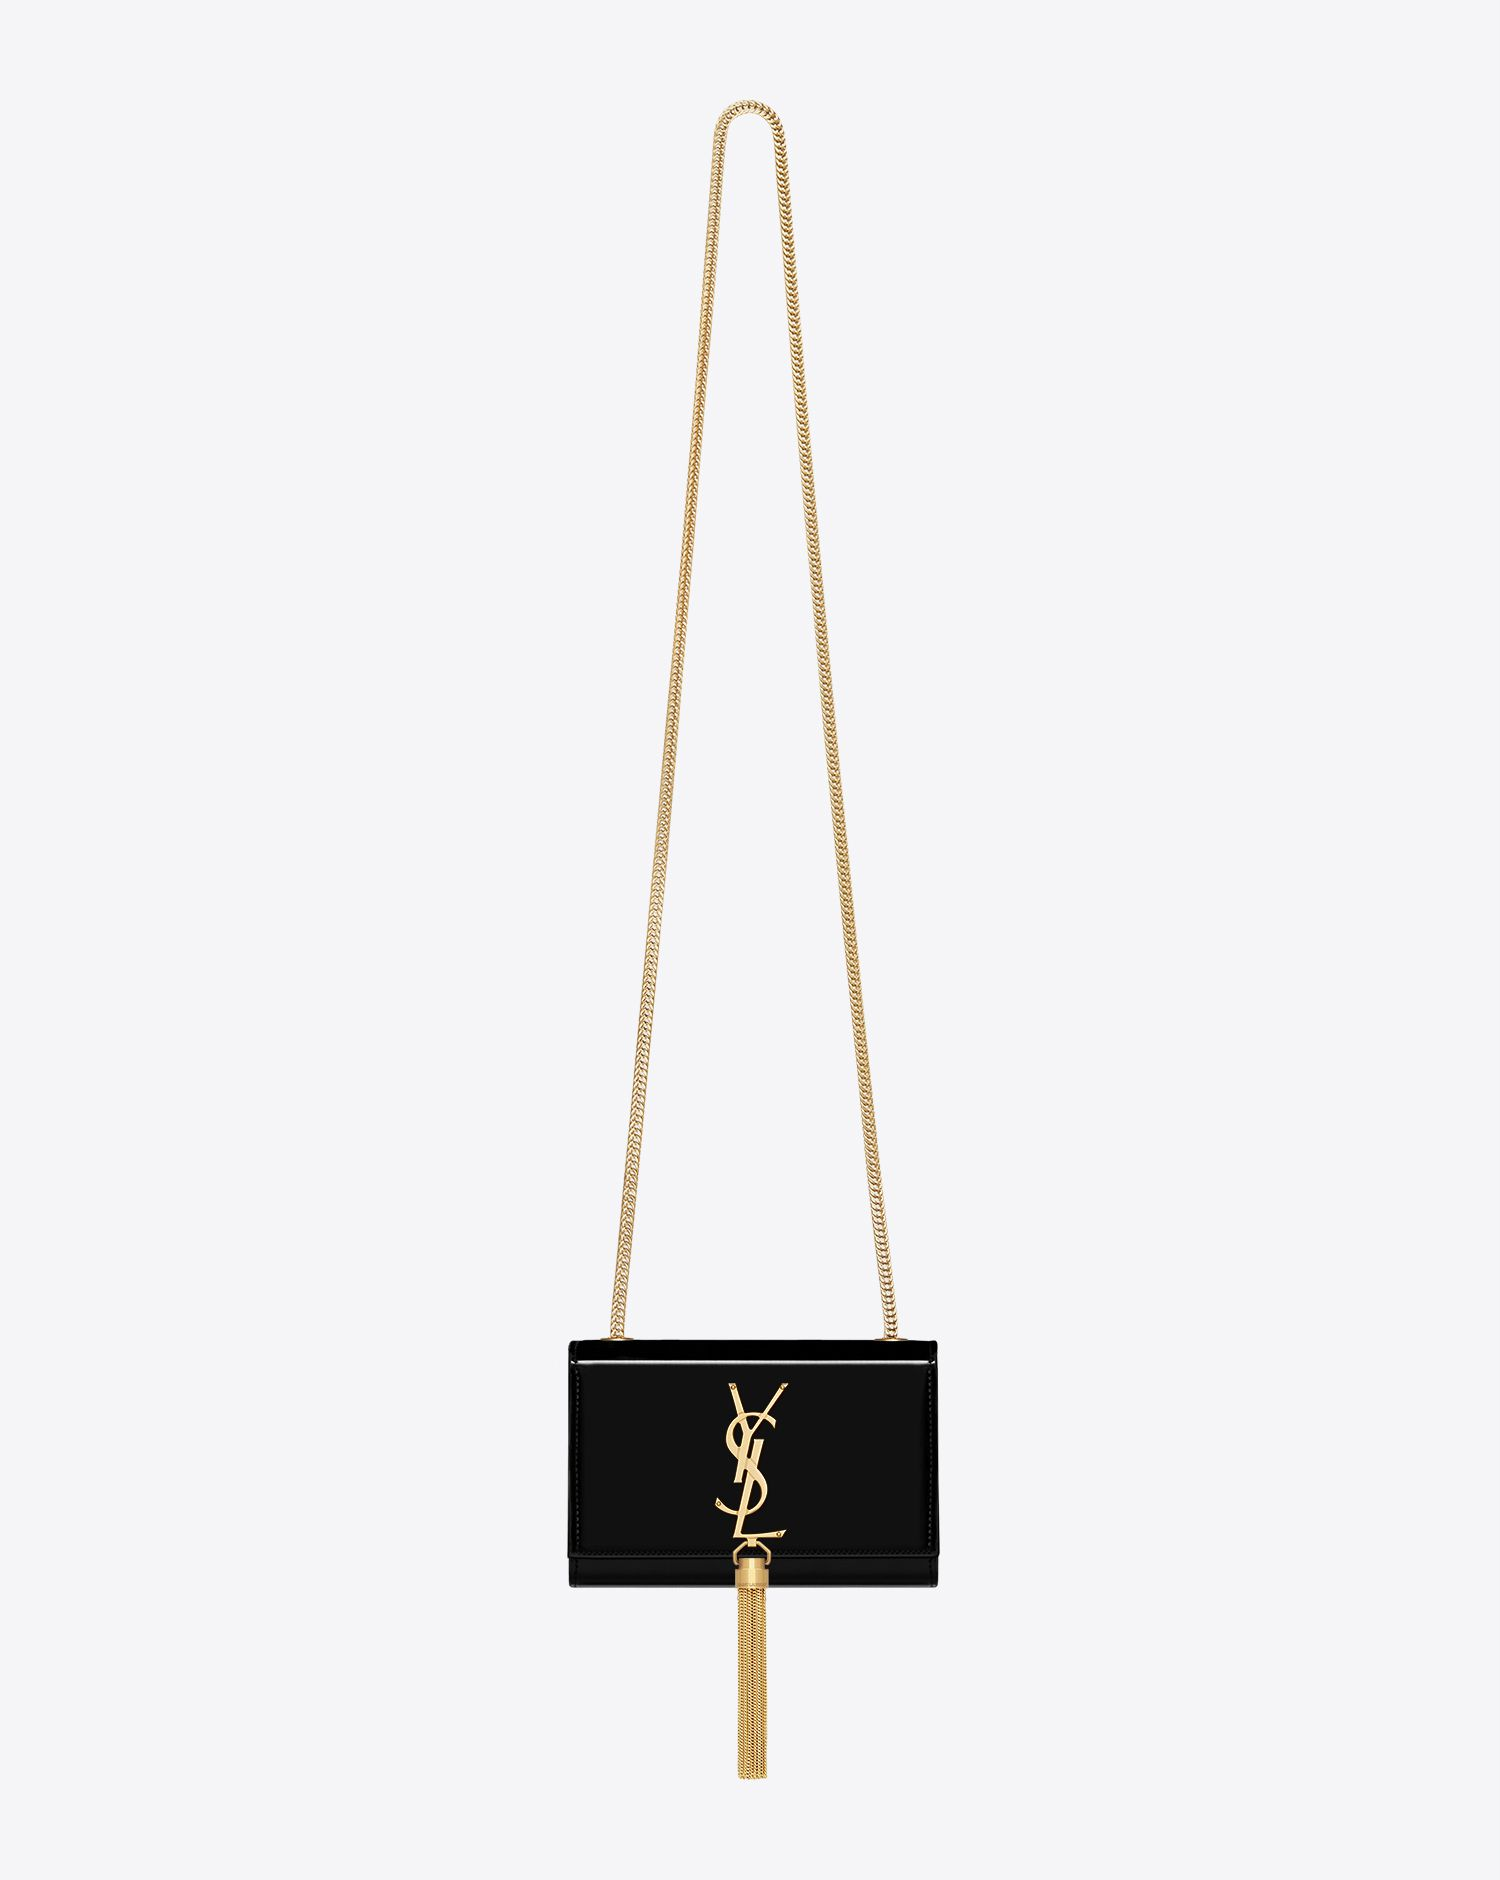 yves saint laurent clutch replica - Saint Laurent Classic Monogramme Clutch Bag Reference Guide ...